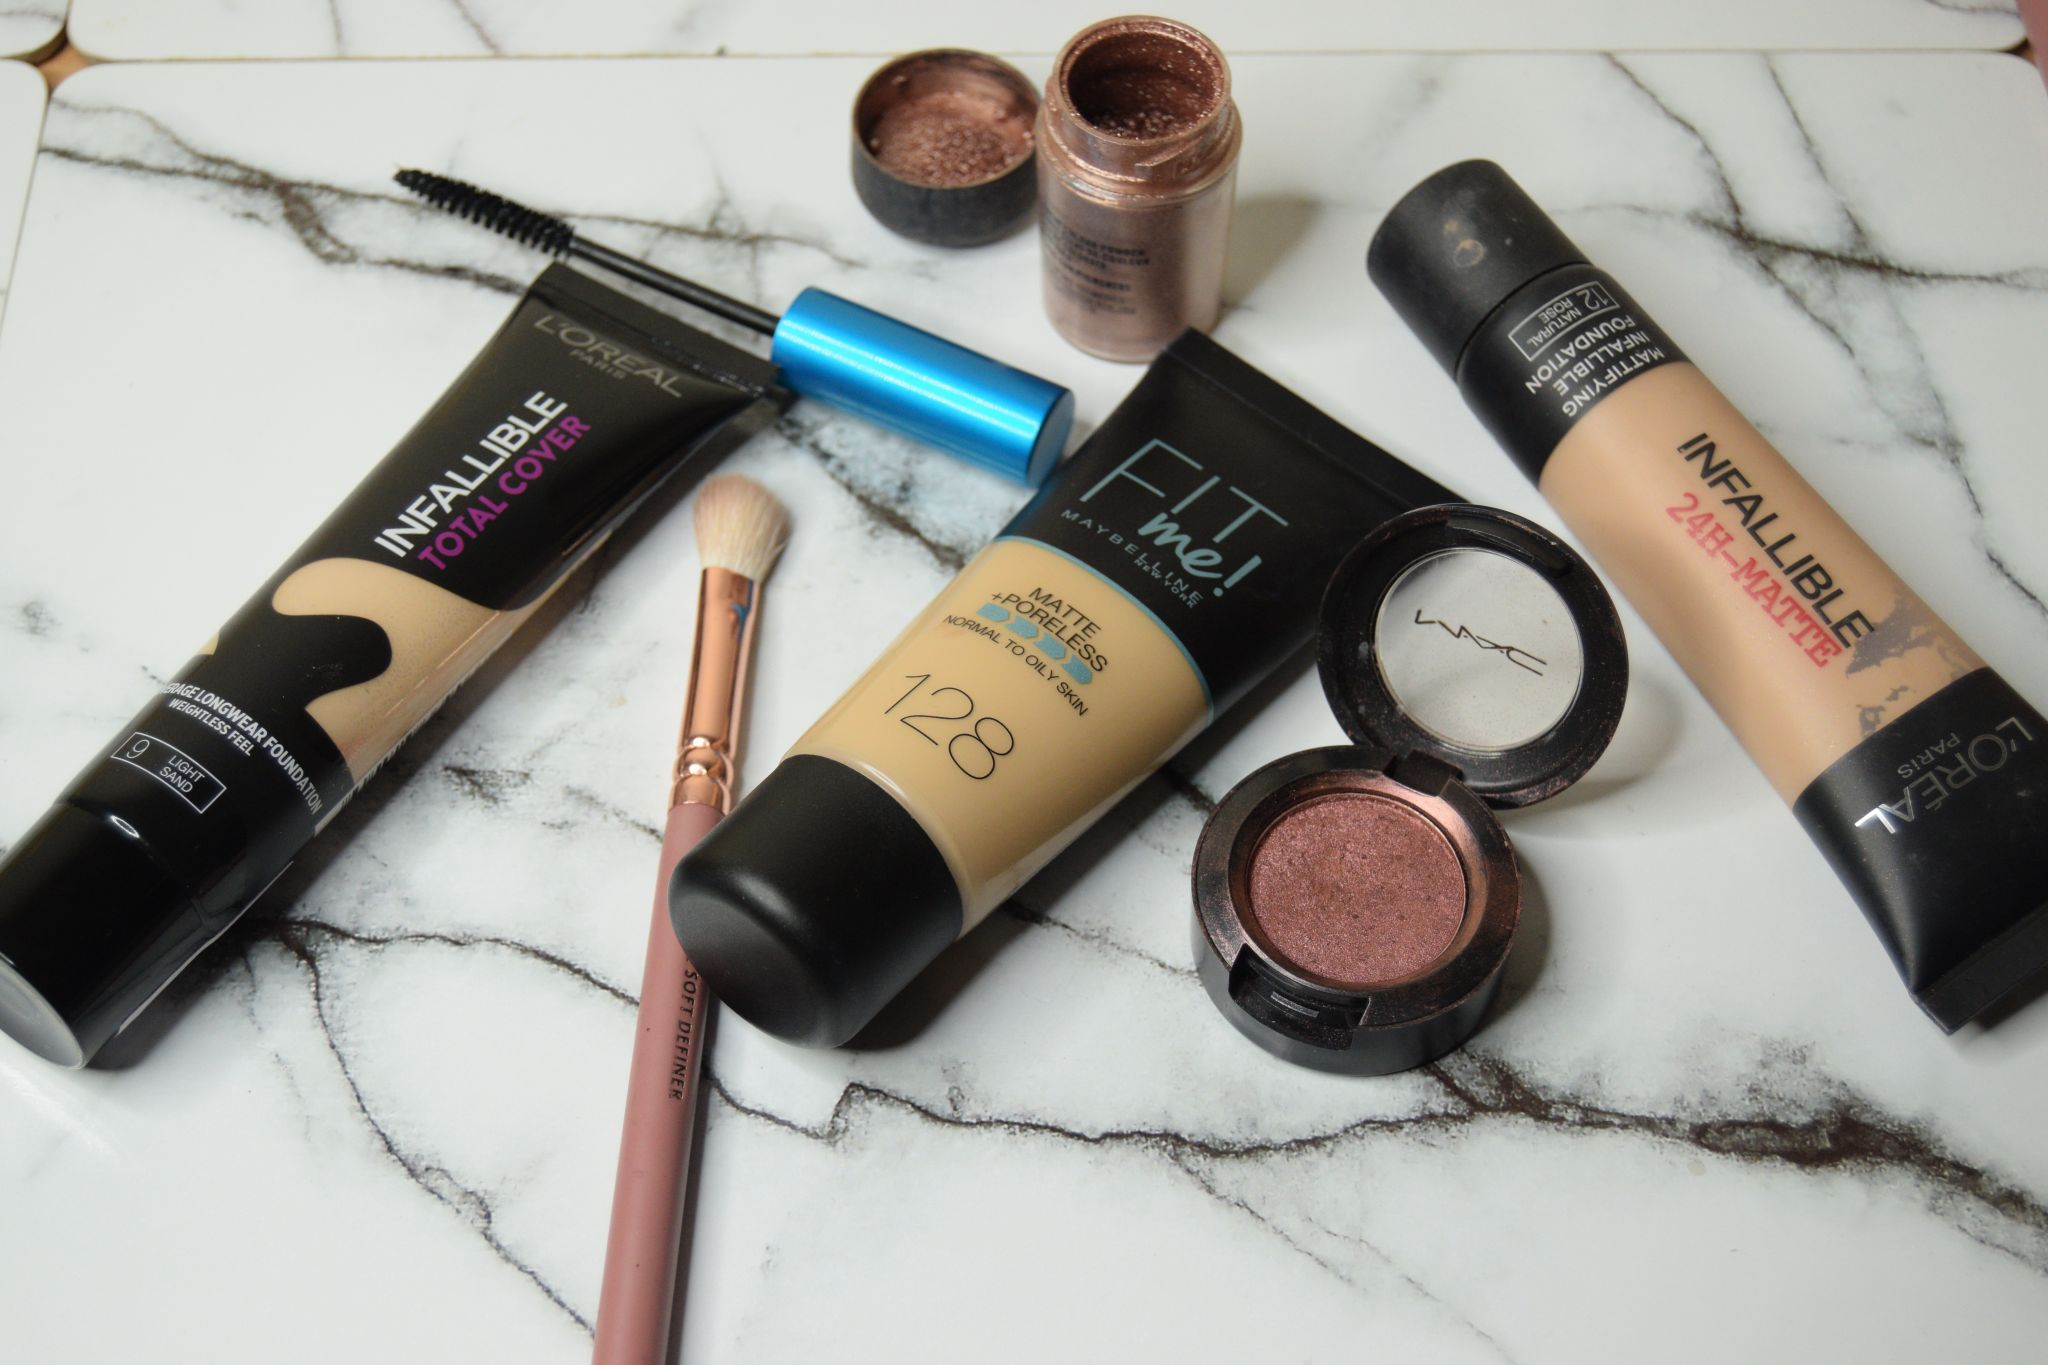 DSC 1472 1440x960 - Top 3 Drugstore Foundations